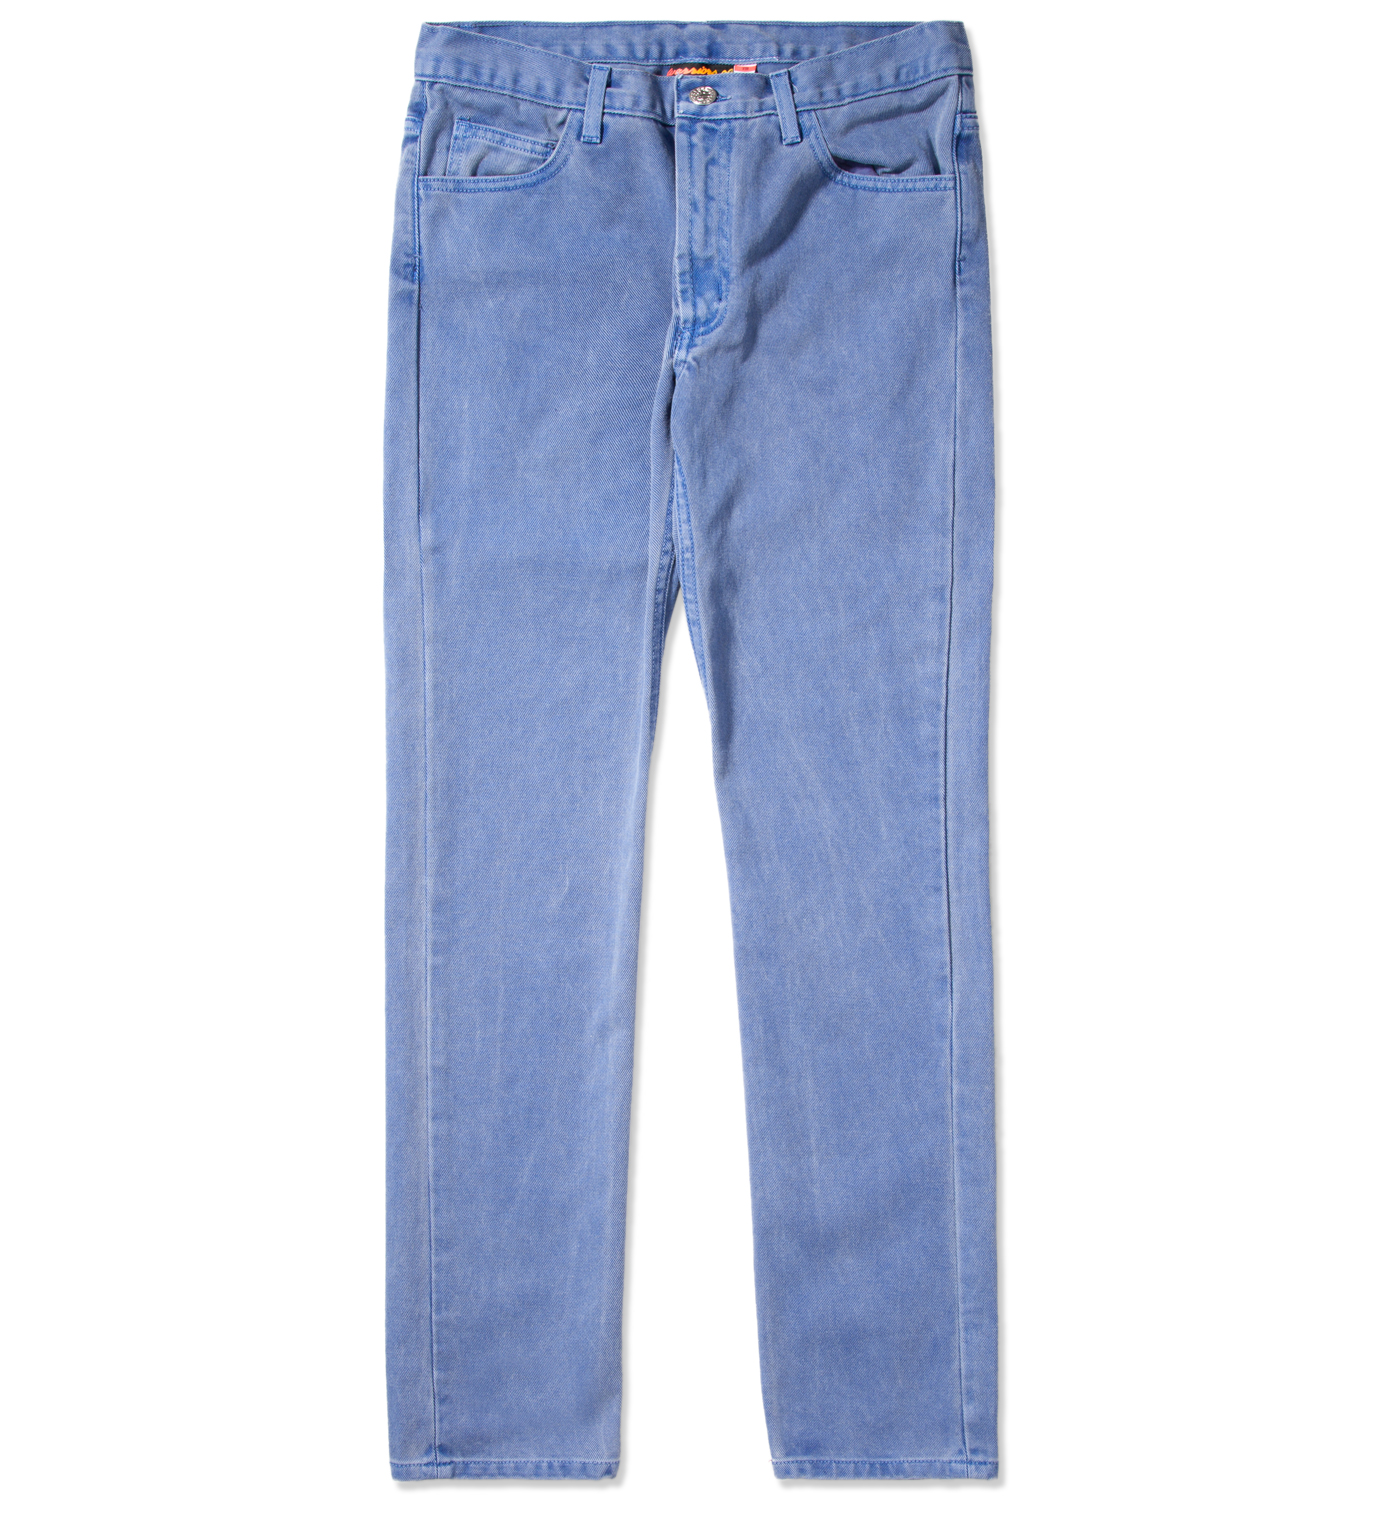 Warriors of Radness Deep Marine Prism Jeans